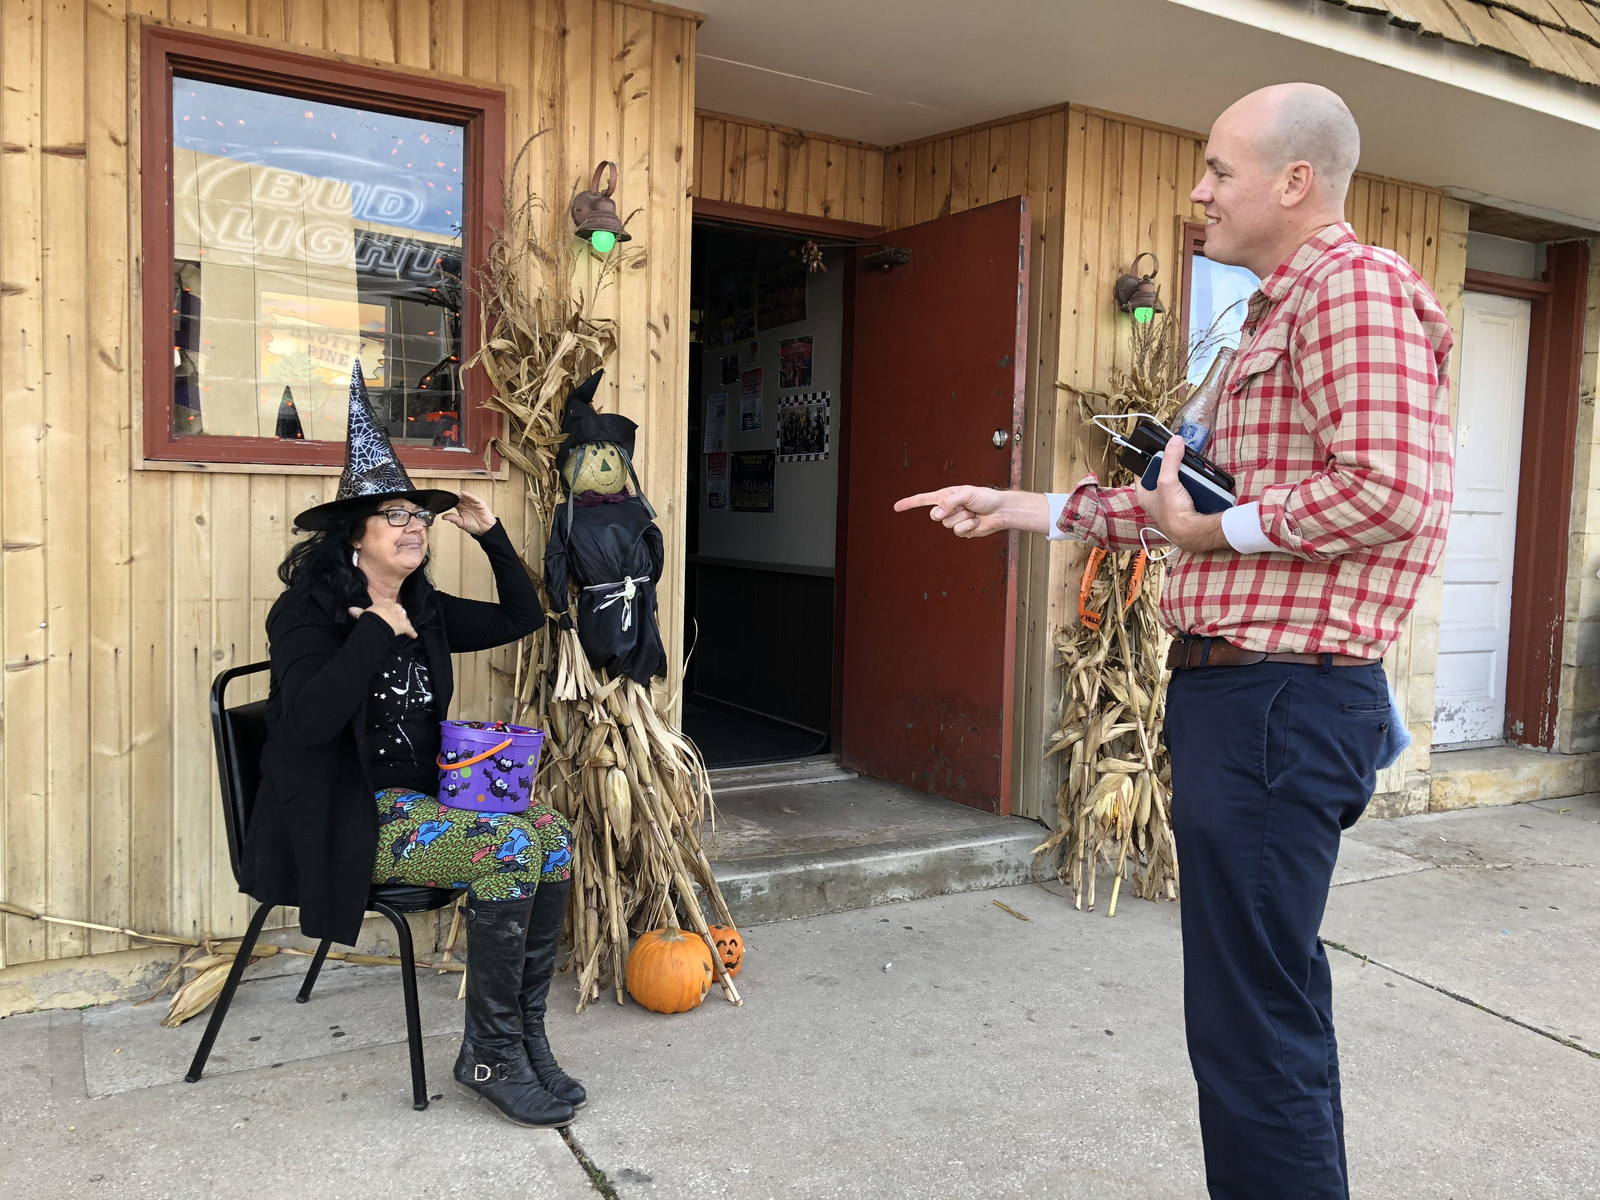 Scholten talking with a voter, Oct. 31, 2018.